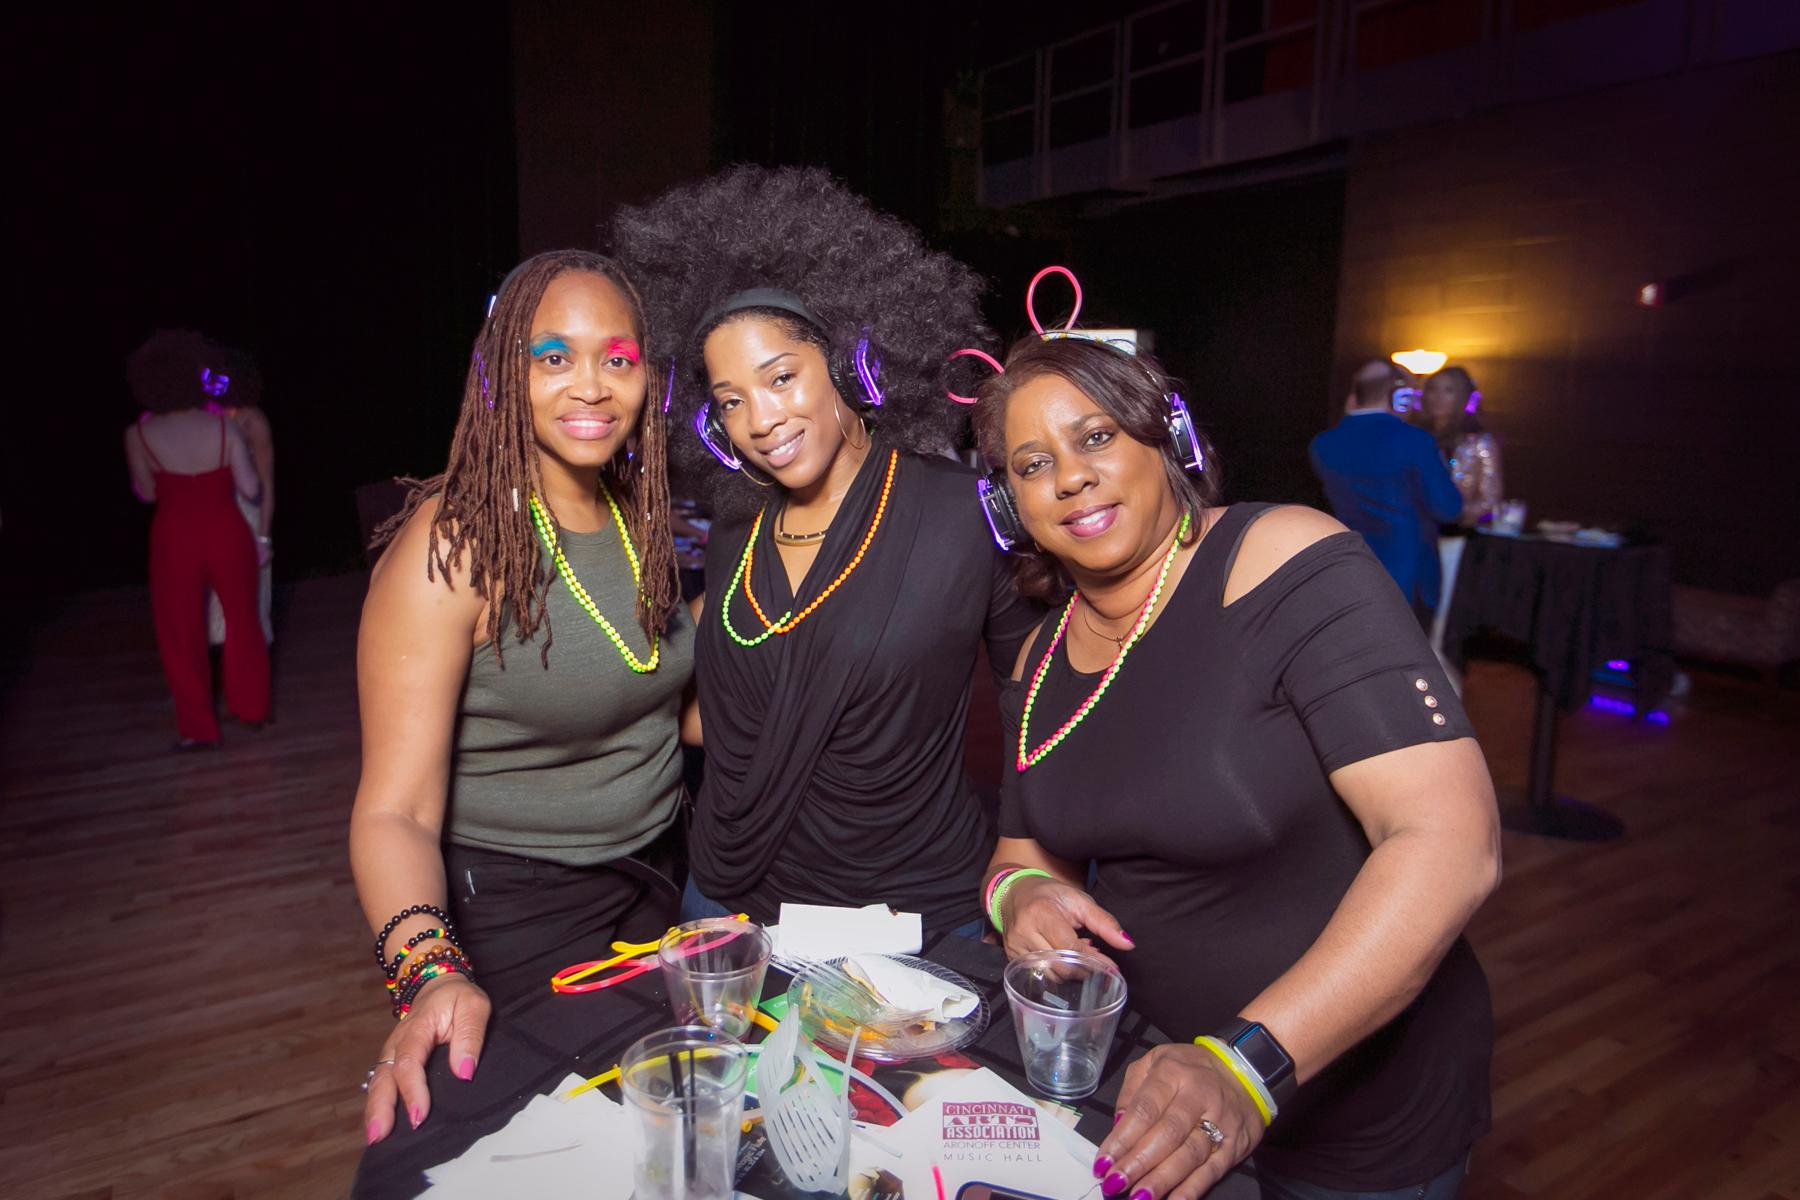 Terri Gaither-Watkins, Chantelle Mcquire, and Sheilah Brackett / Image: Mike Bresnen Photography